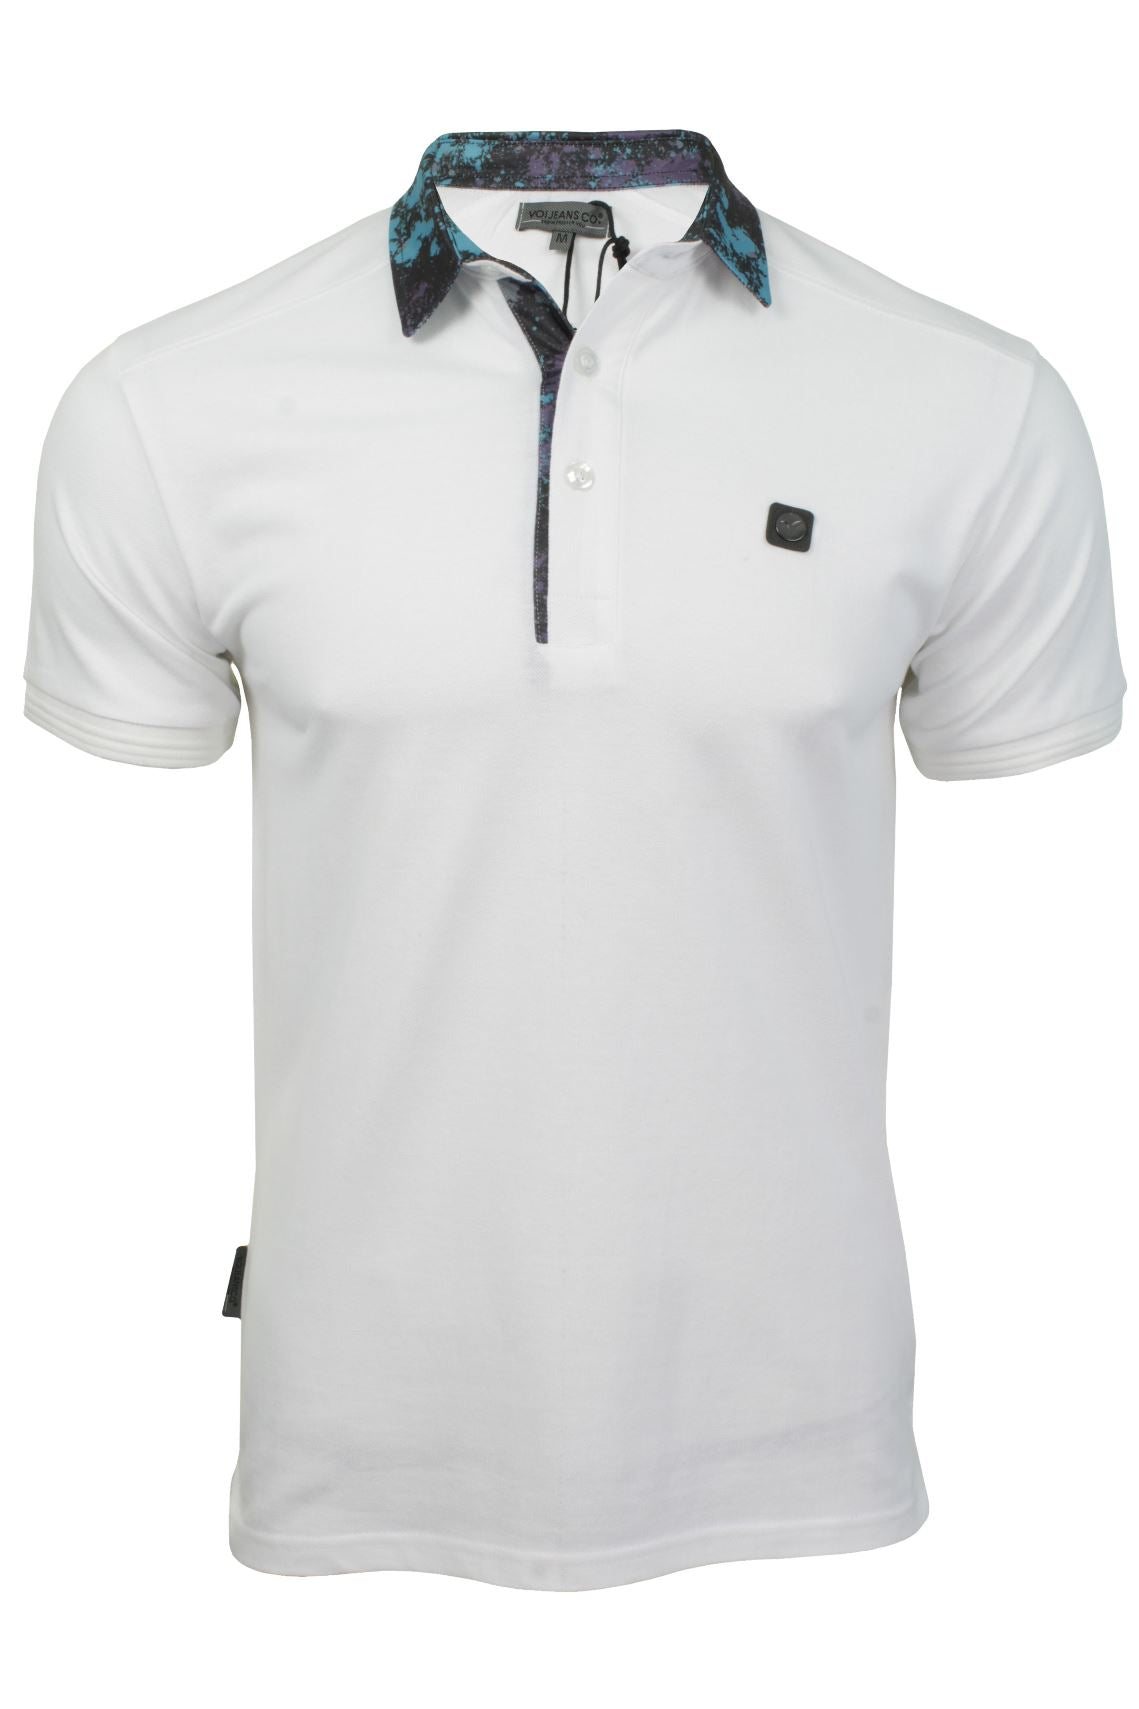 Mens Polo T-Shirt by Voi Jeans 'Ghost'-Main Image